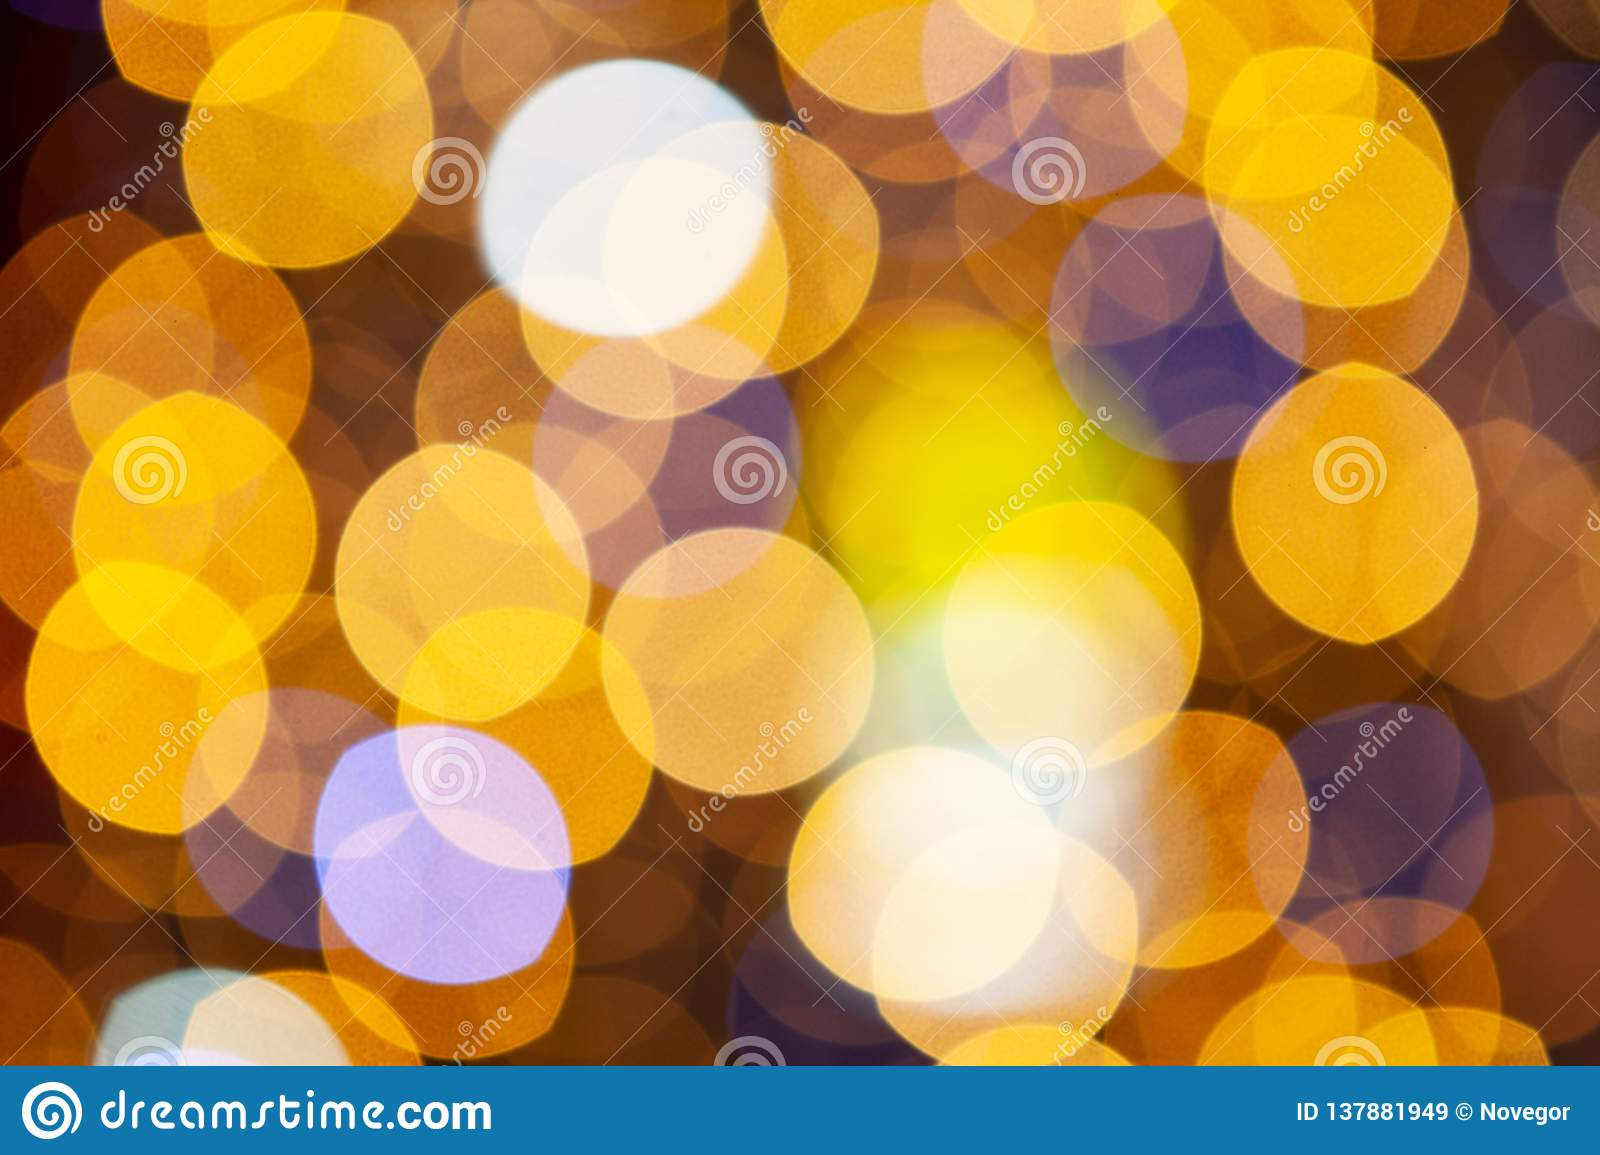 Gold glittering christmas lights. Blurred abstract background, close-up